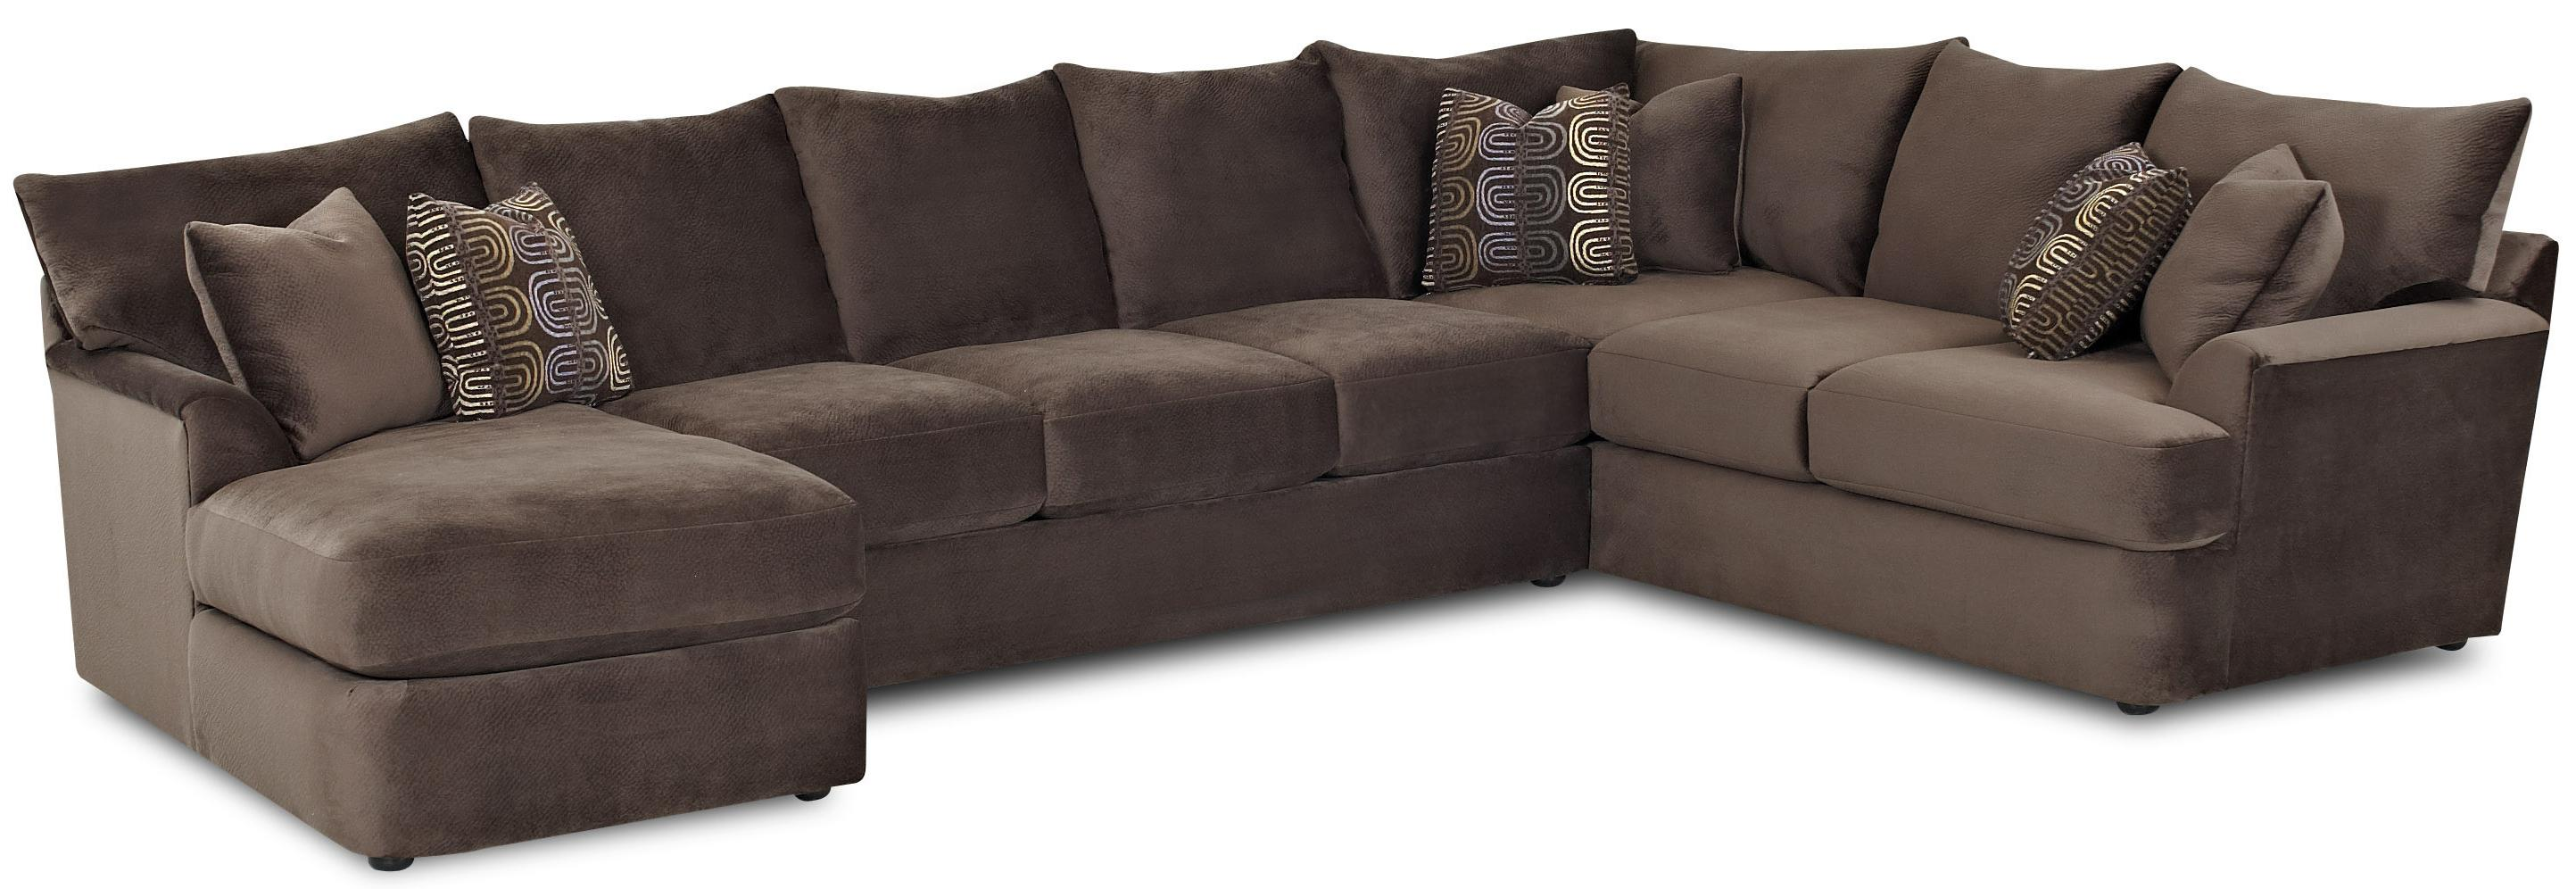 L-Shaped Sectional Sofa with Left Chaise by Klaussner | Wolf ...